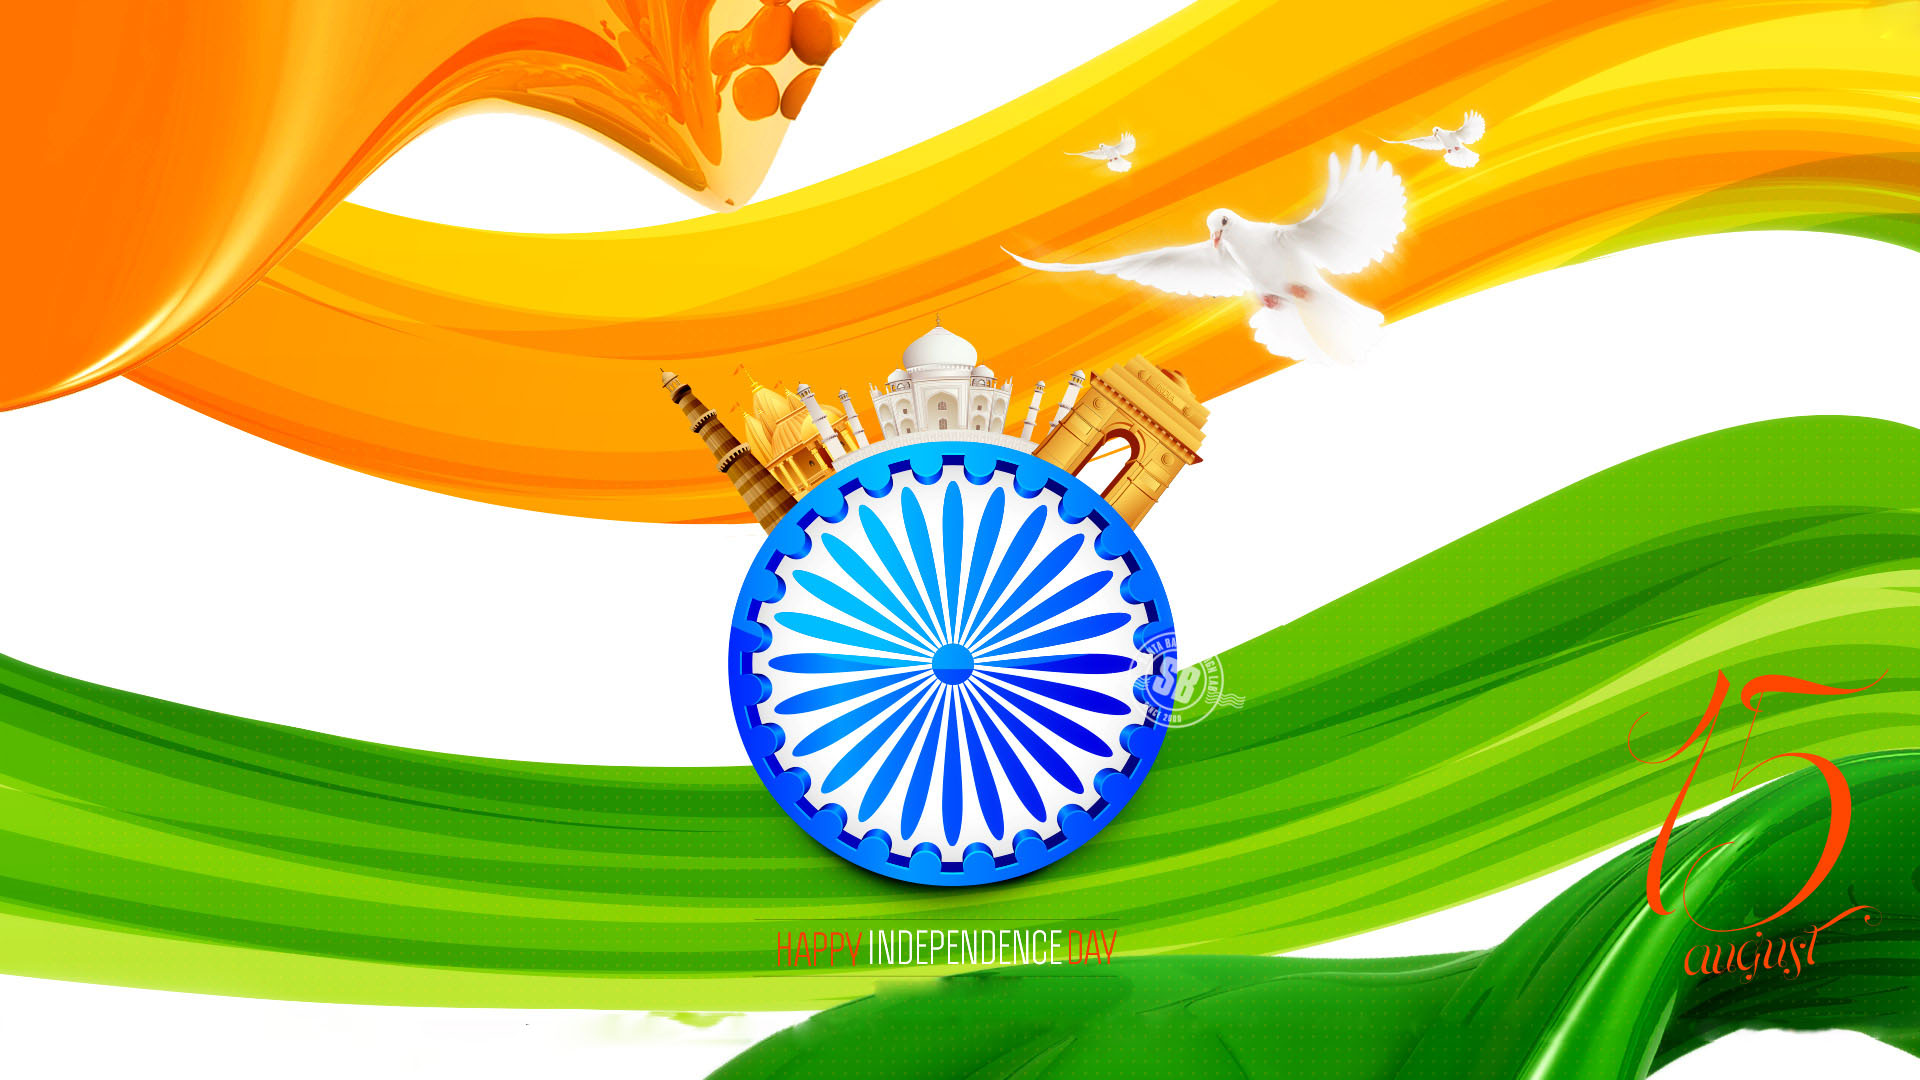 15 august 2015 independence day wallpaper hd